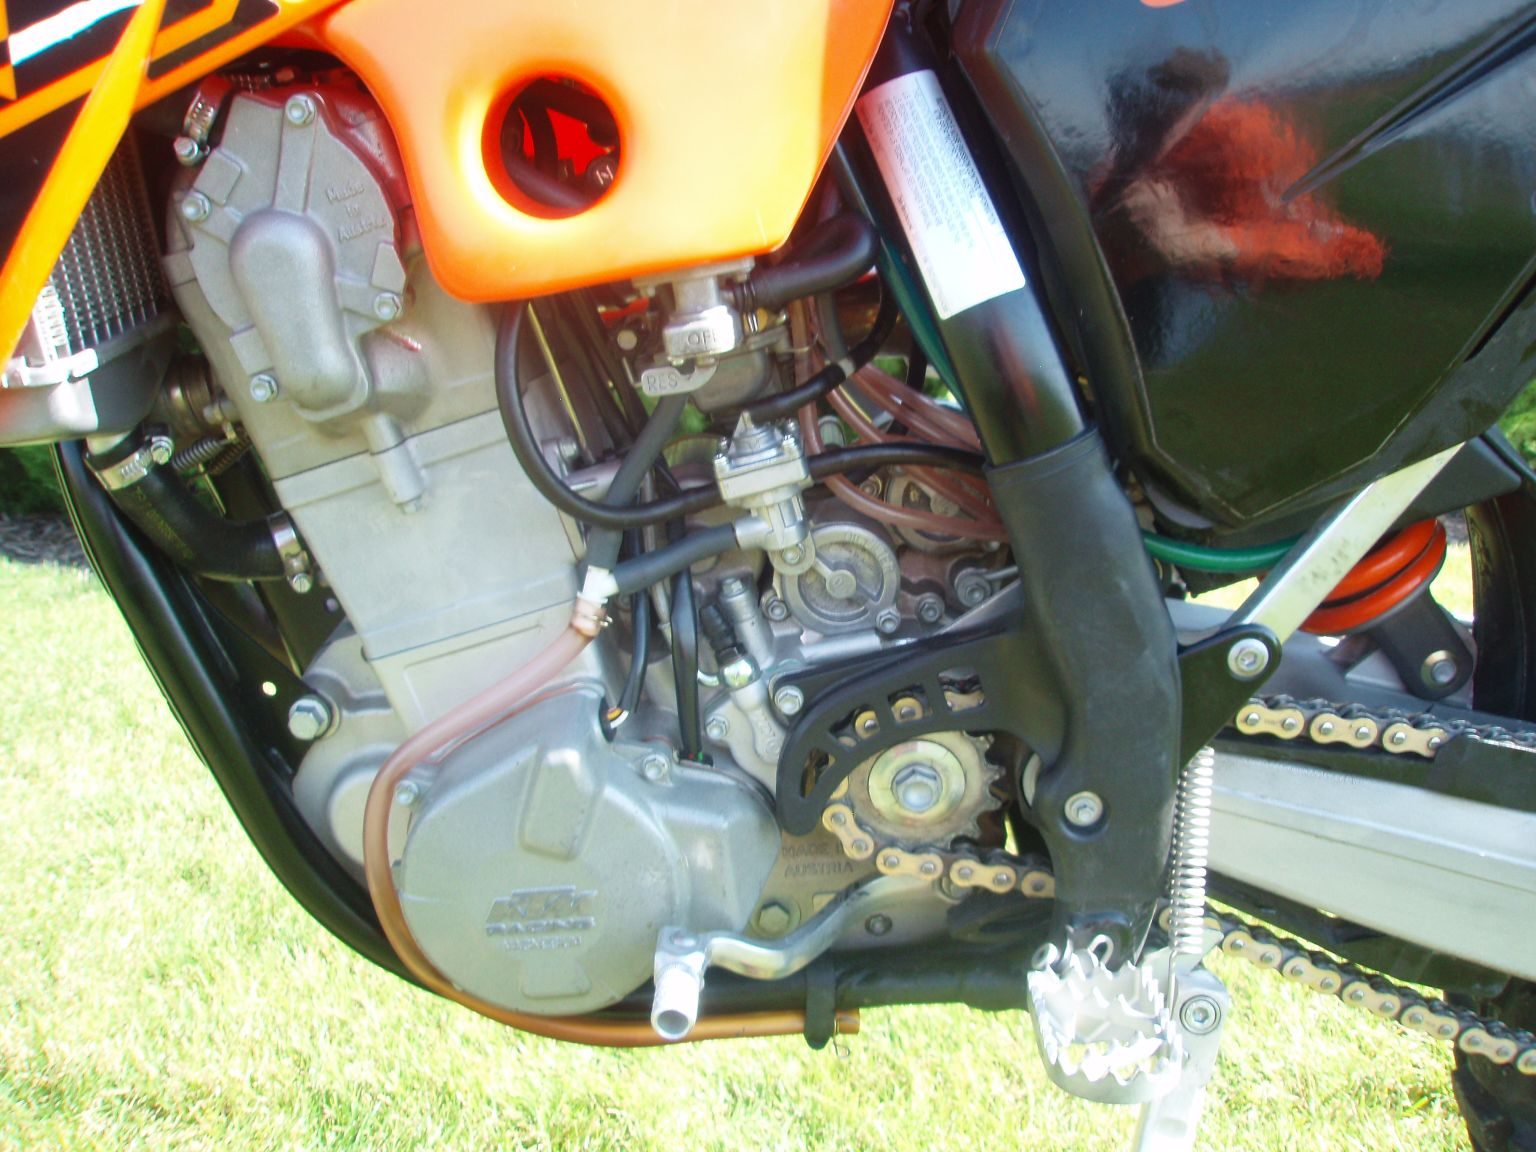 Ktm 525 Adventure Project Fuse Box On Motorcycle